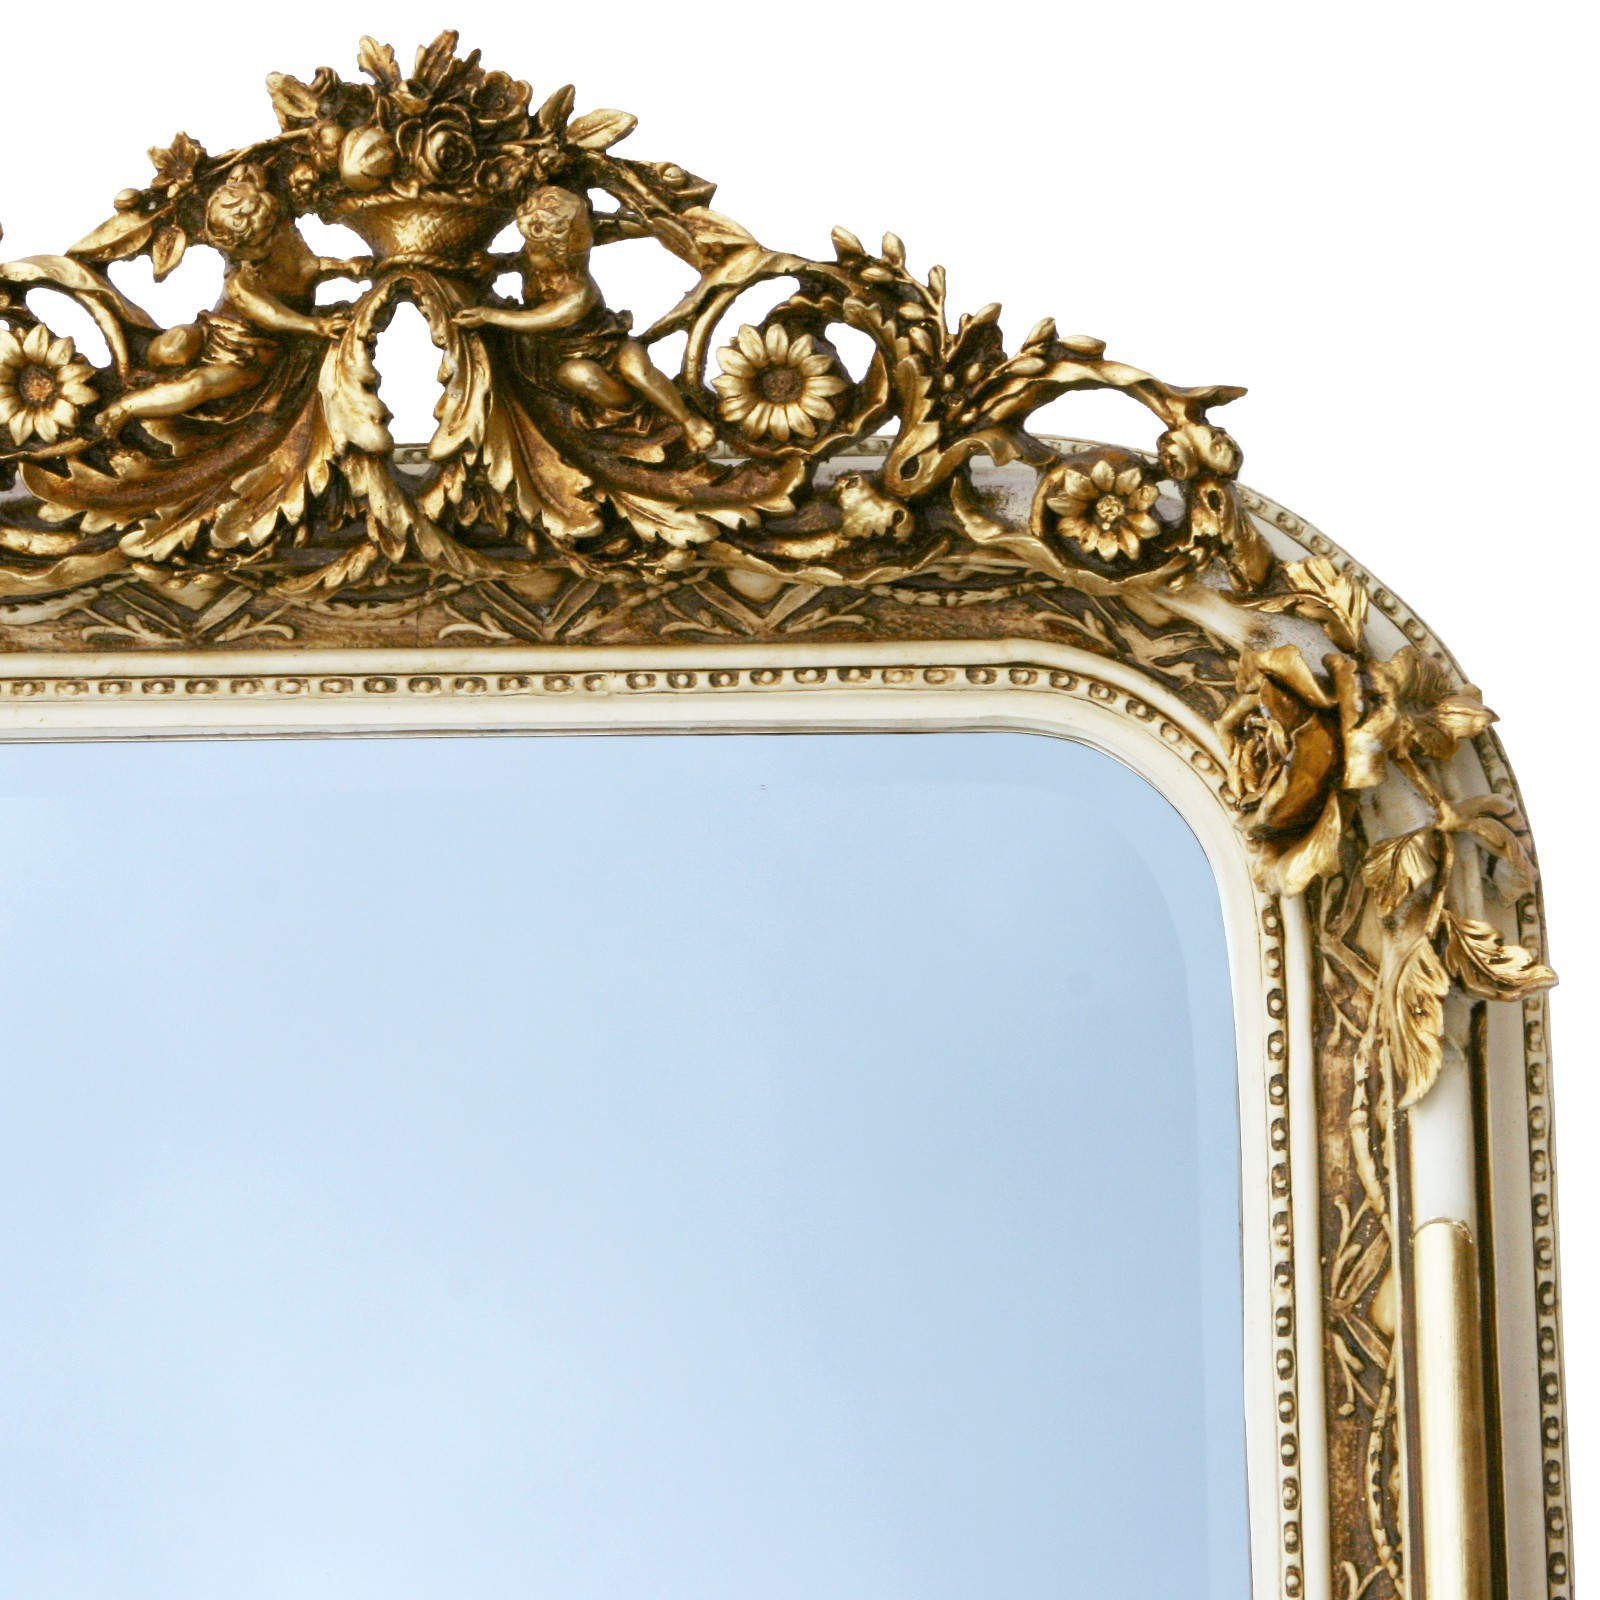 Cheval Luxurious Baroque Style Angel Vintage Wall Mirror In Gold And White 61 4 Inch X 35